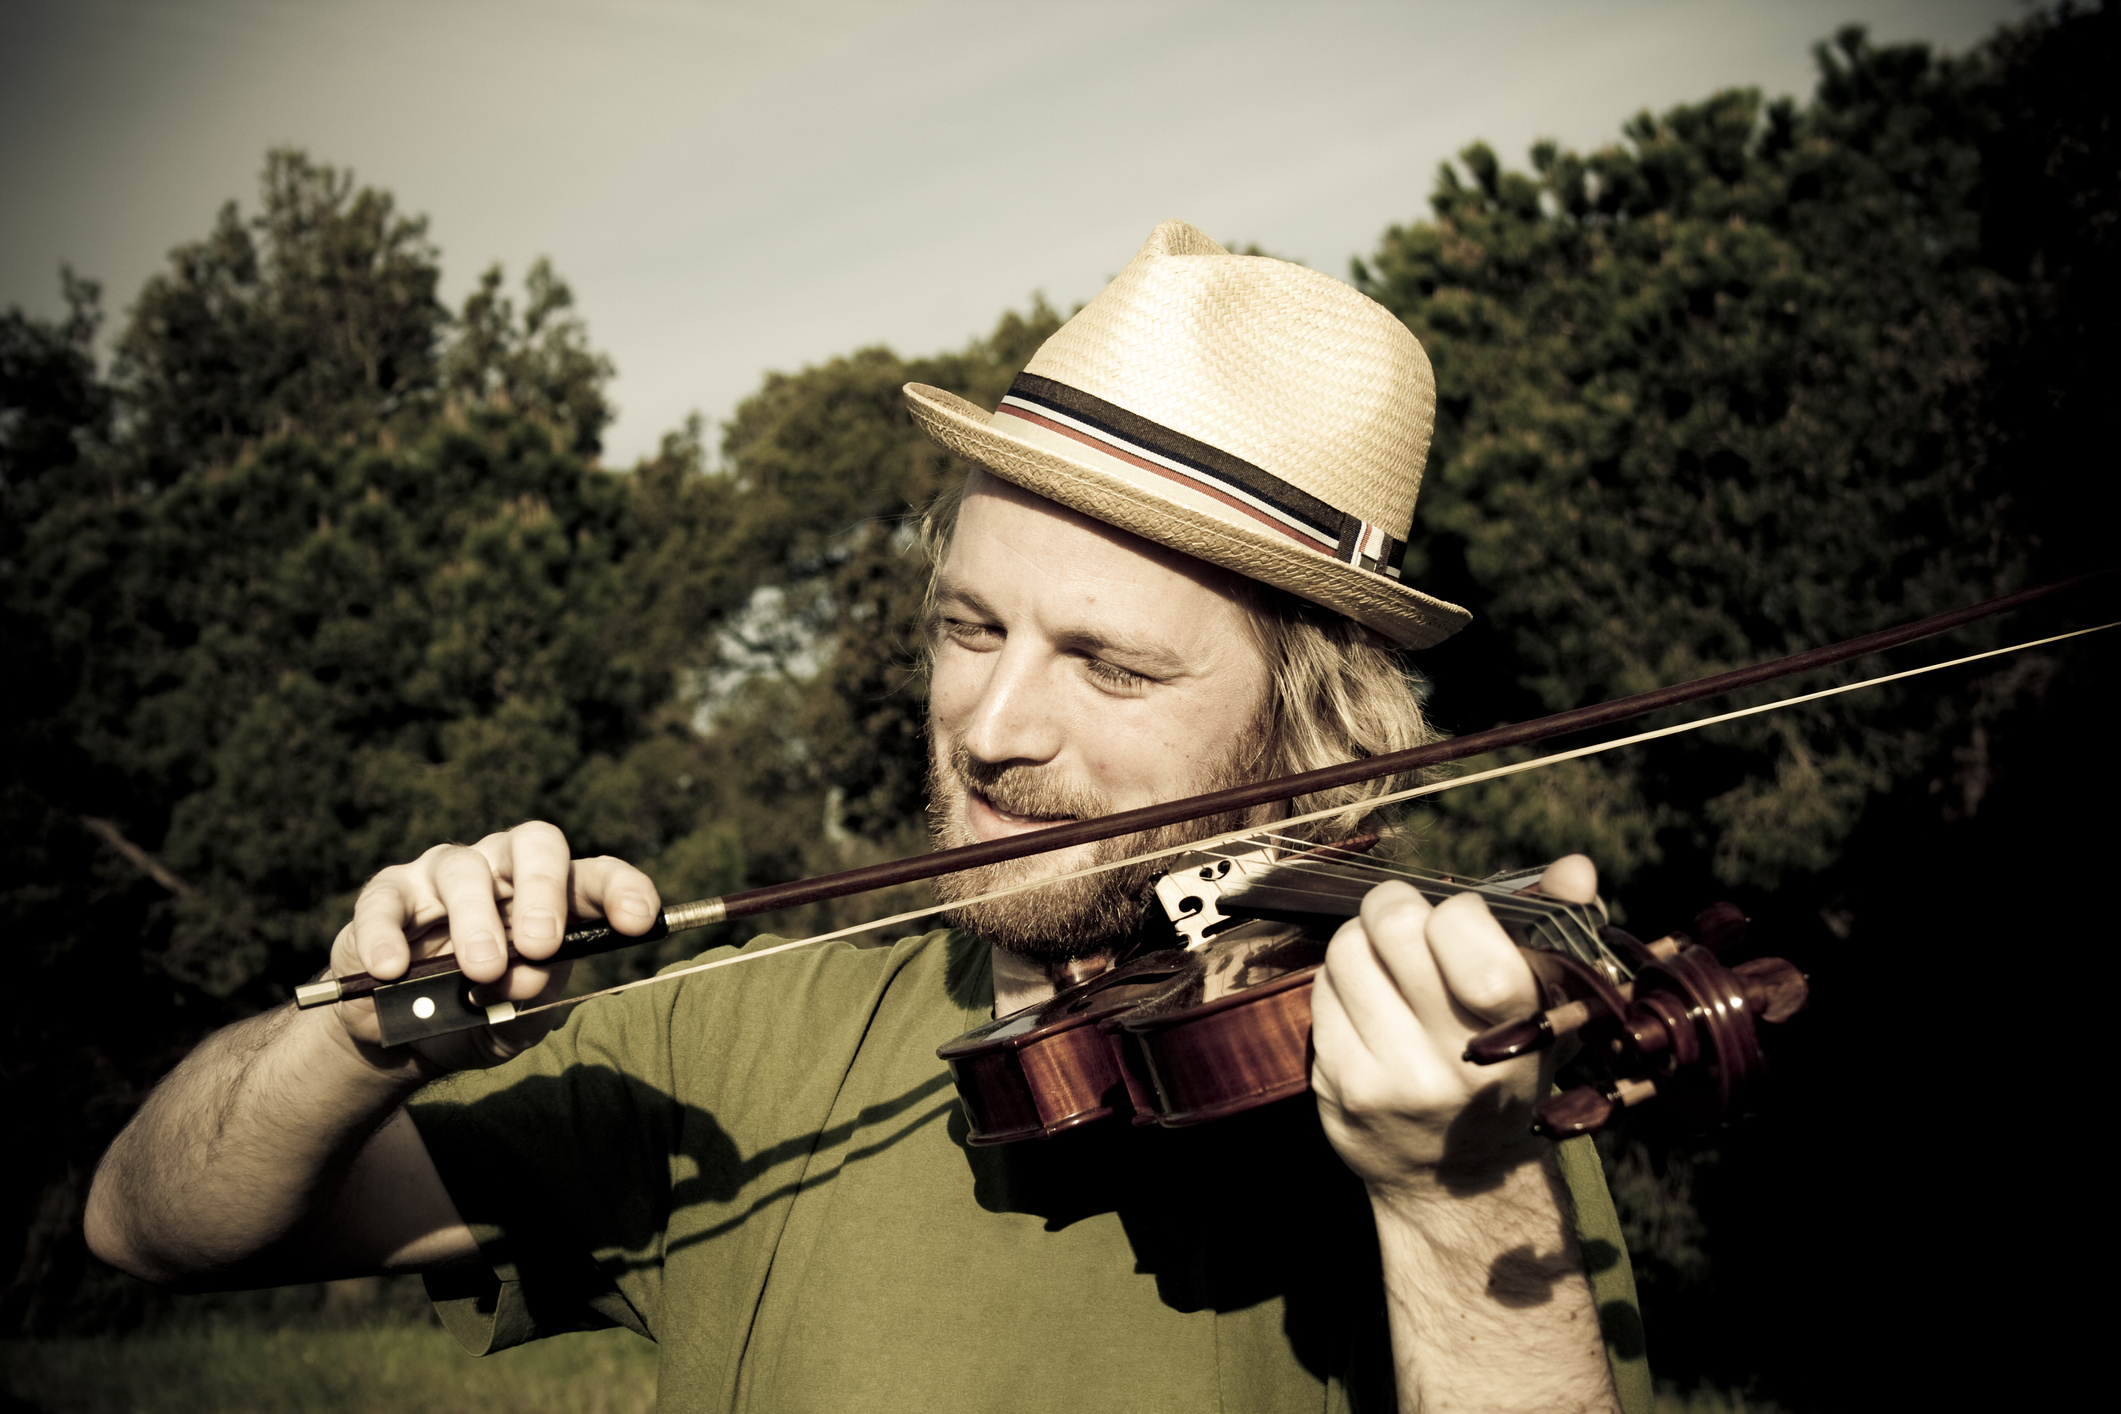 Man playing fiddle in a forested area.